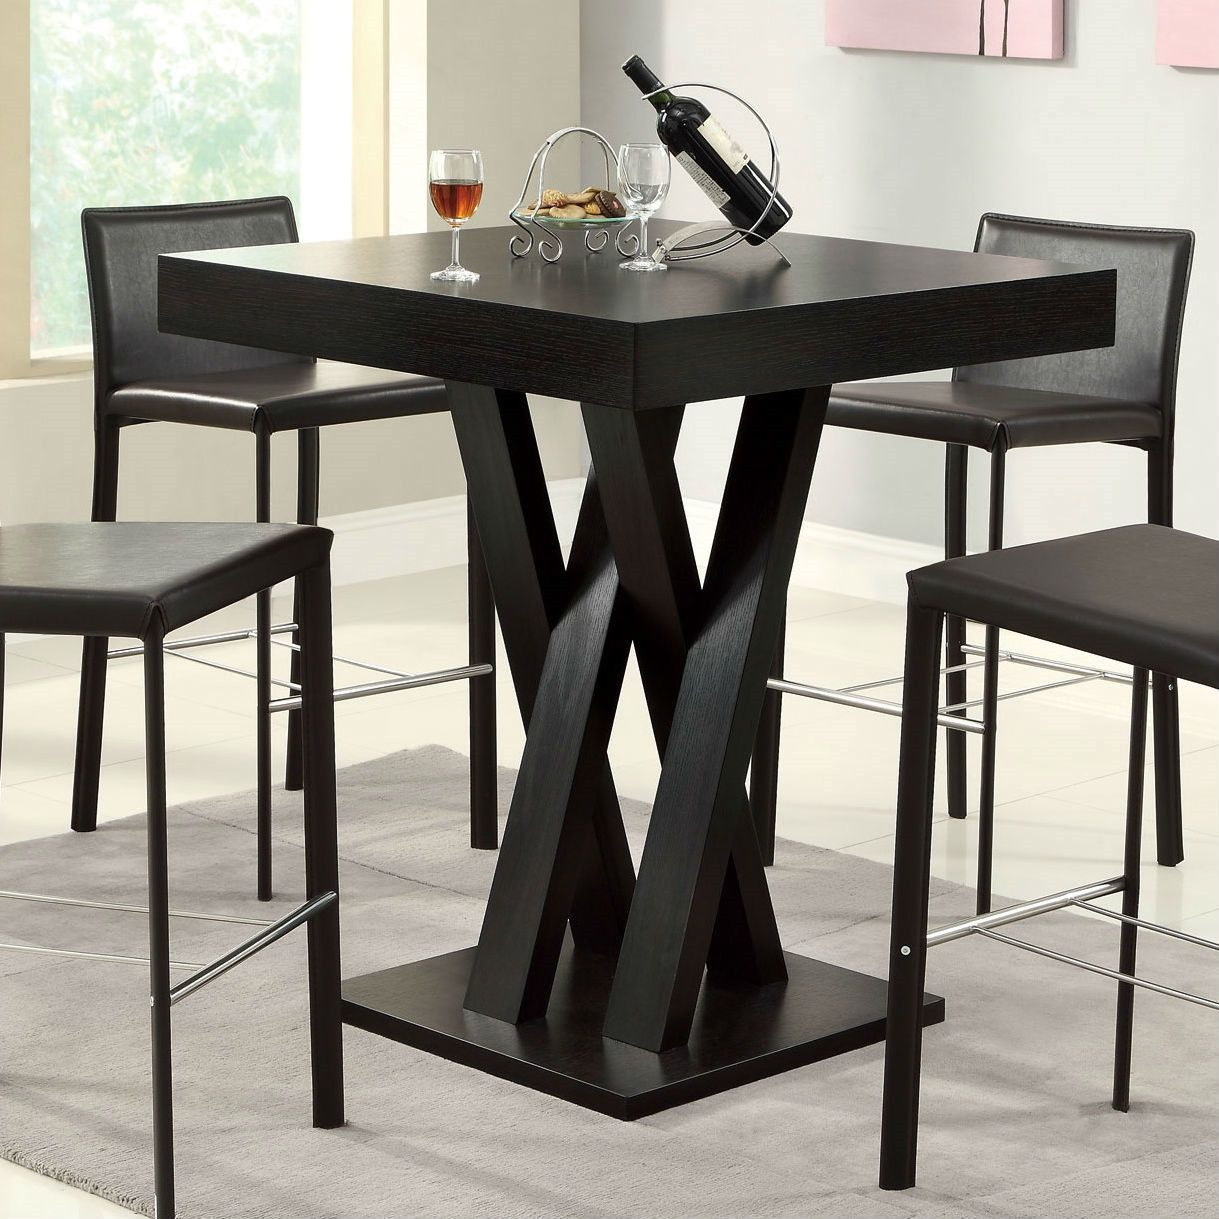 Modern 40 Inch High Square Dining Table In Dark Cappuccino Finish